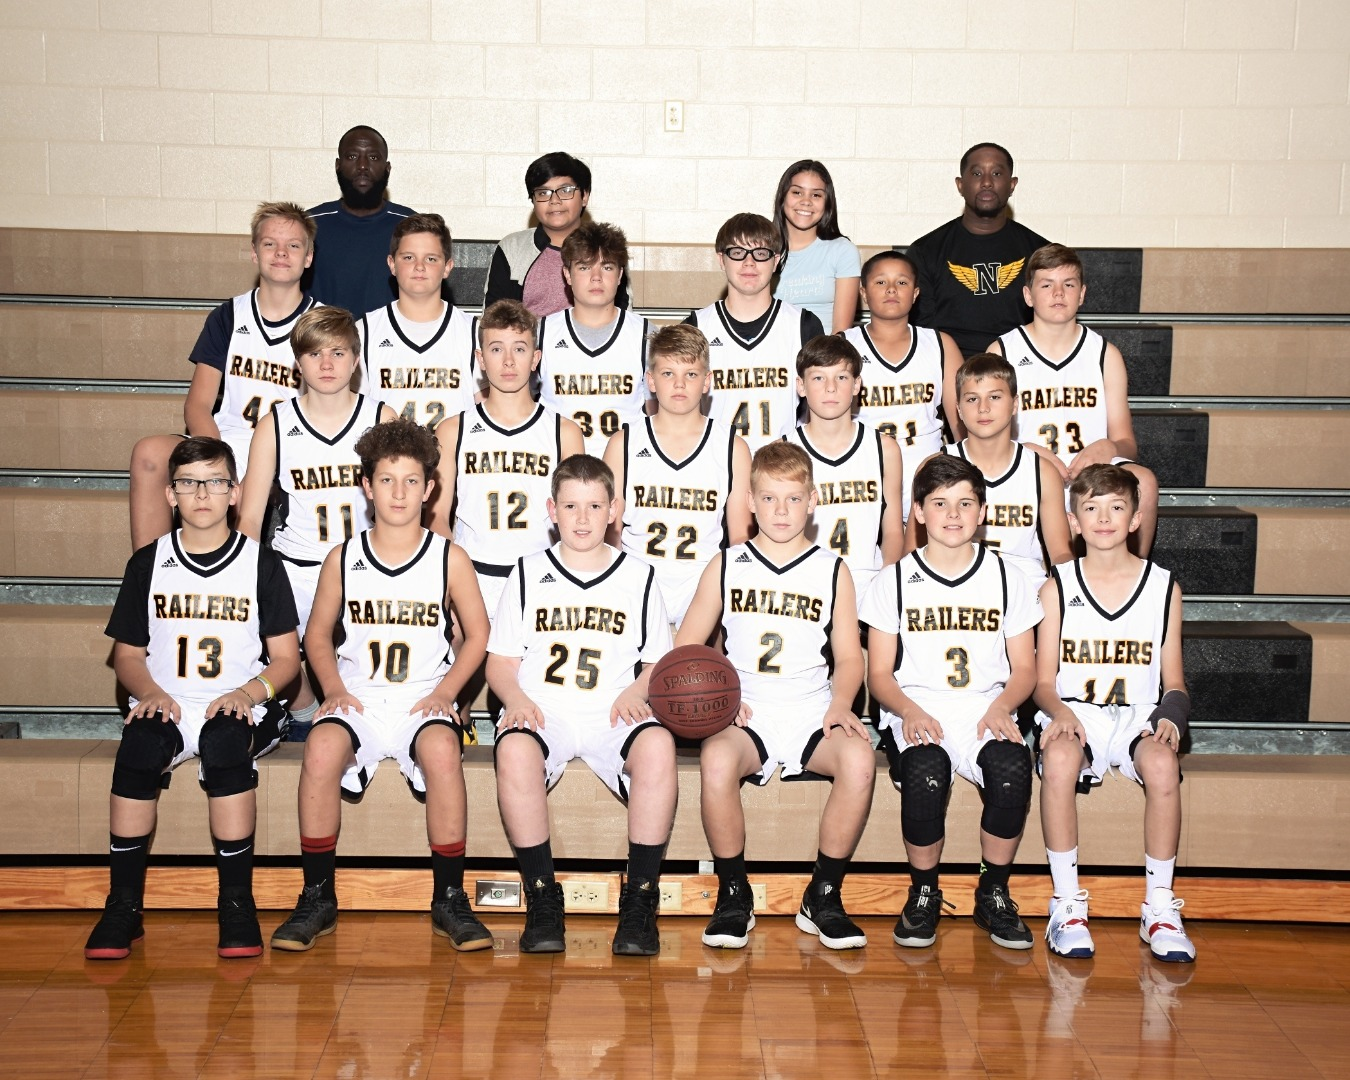 7th Grade boys team picture